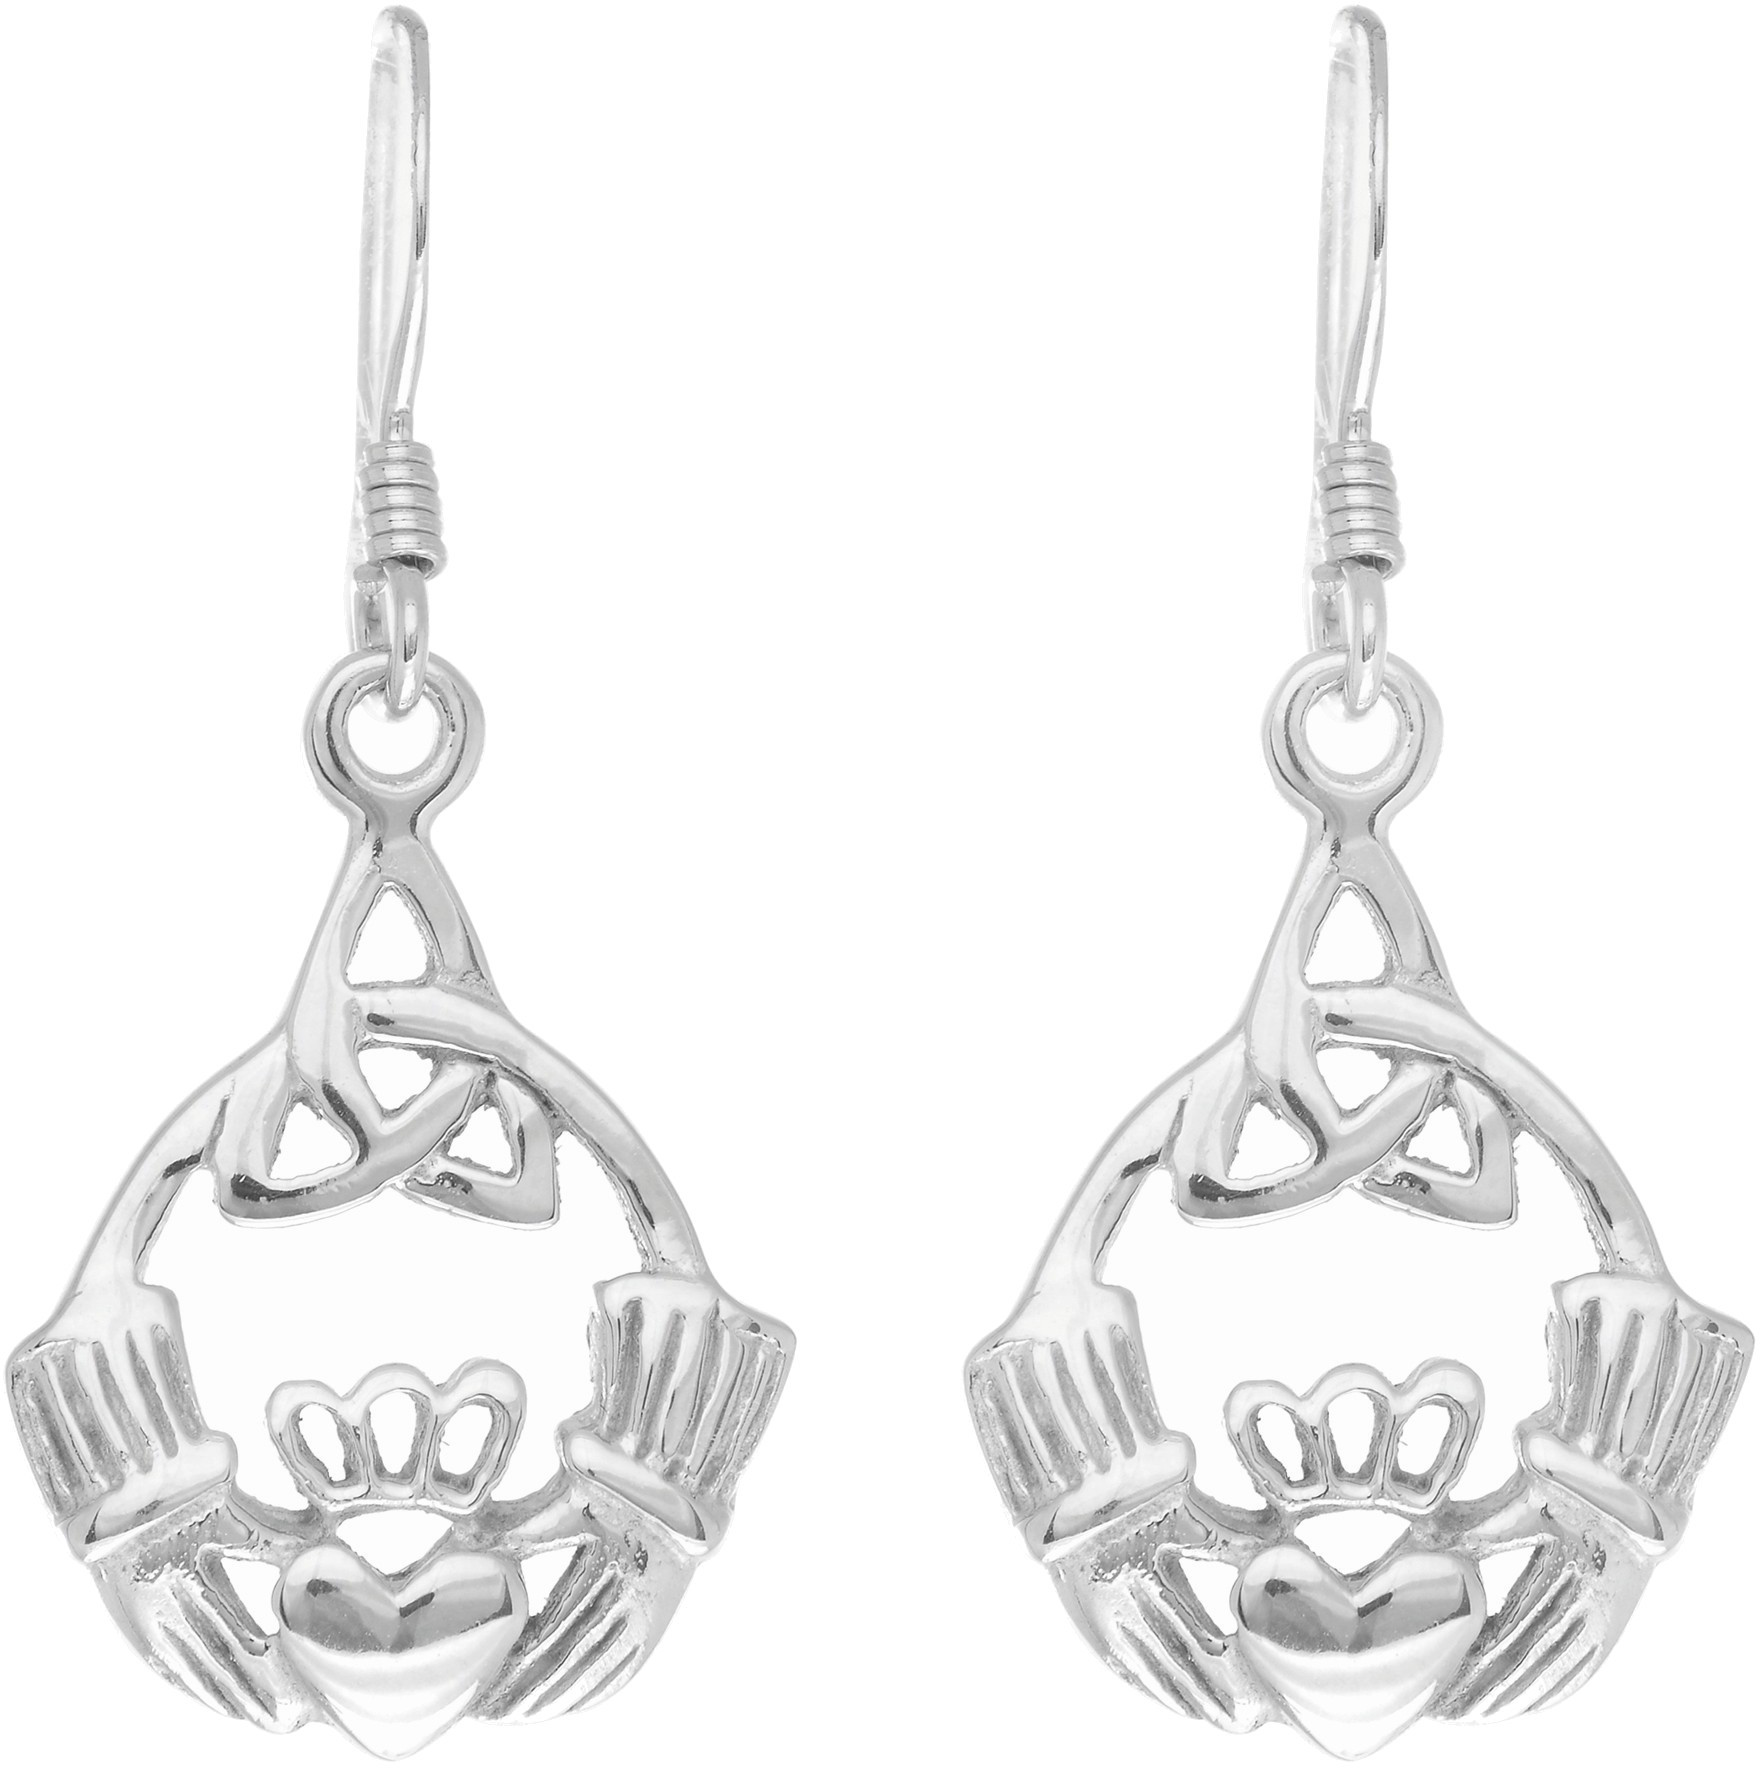 Silver Rhodium Plated Shiny Claddagh Drop Earrings